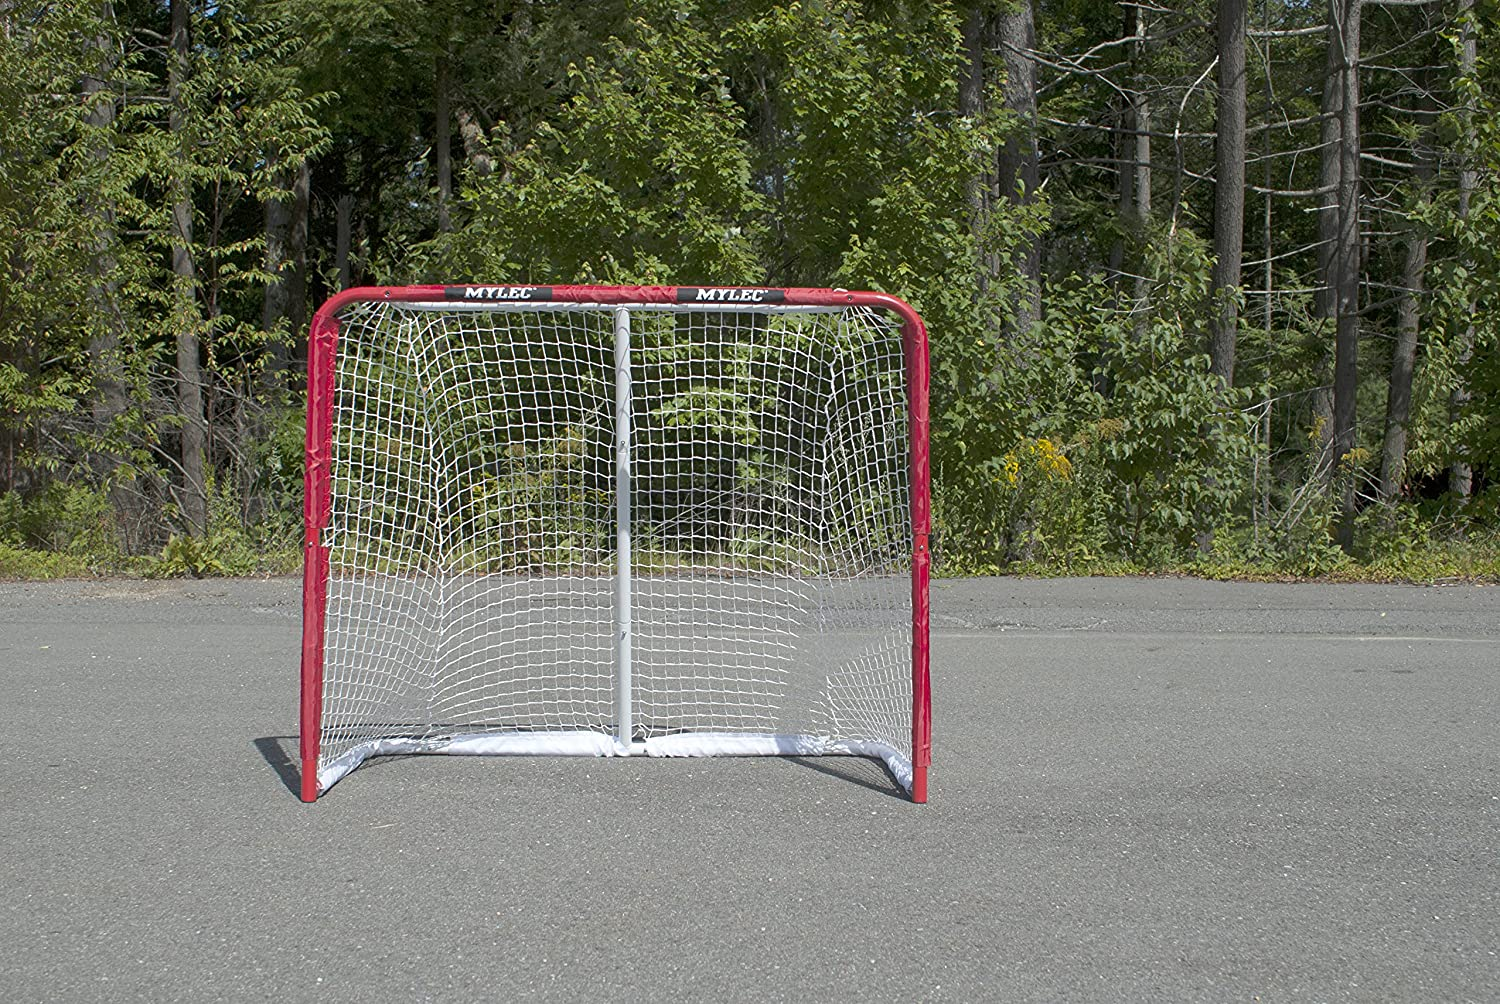 Mylec All Purpose Steel Goal, Red : Hockey Nets : Sports & Outdoors